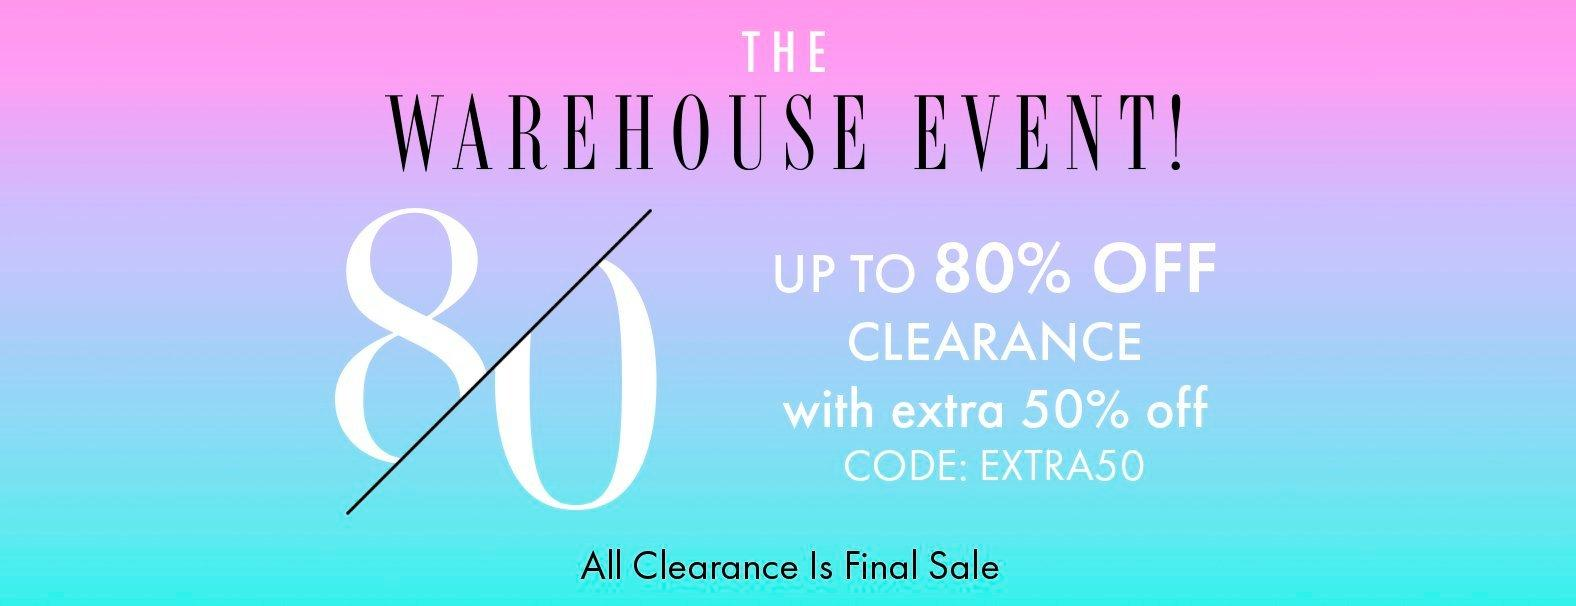 black and white text on a gradient blue and pink background: the warehouse event! up to 80% off clearance with extra 50% off. code: extra50. all clearance is final sale.